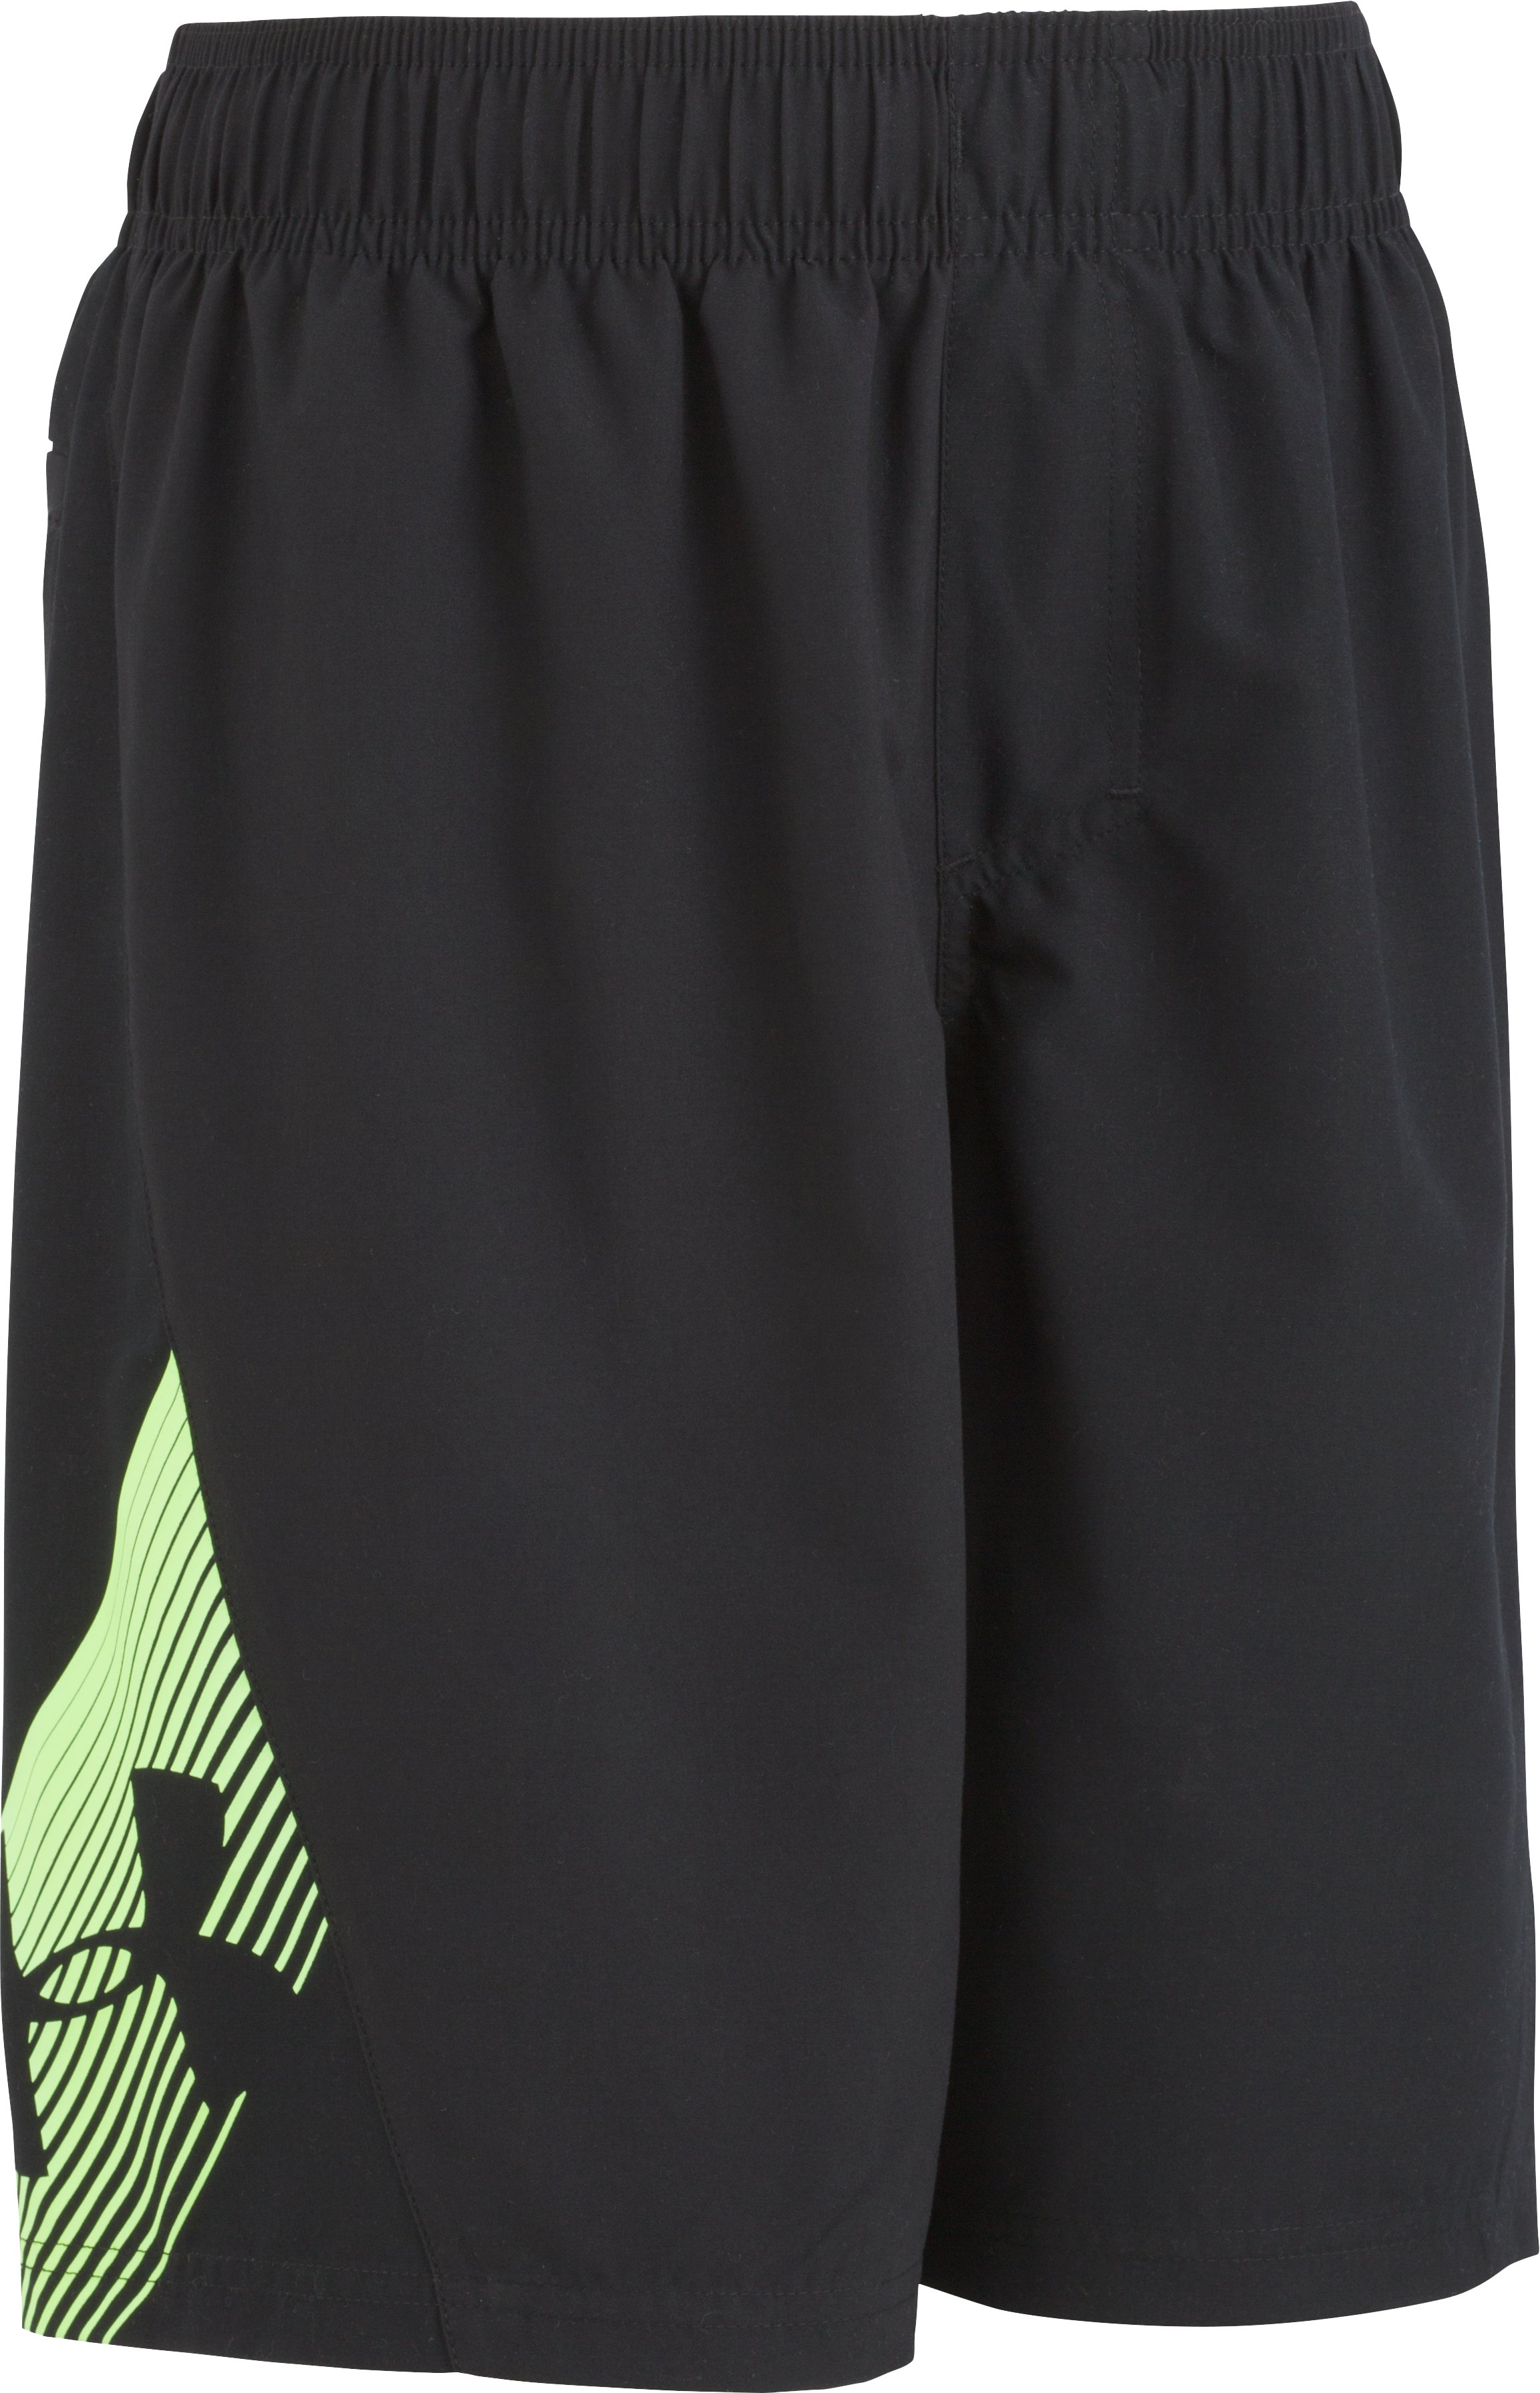 Boys' Toddler UA Entry Solid Boardshorts, Black